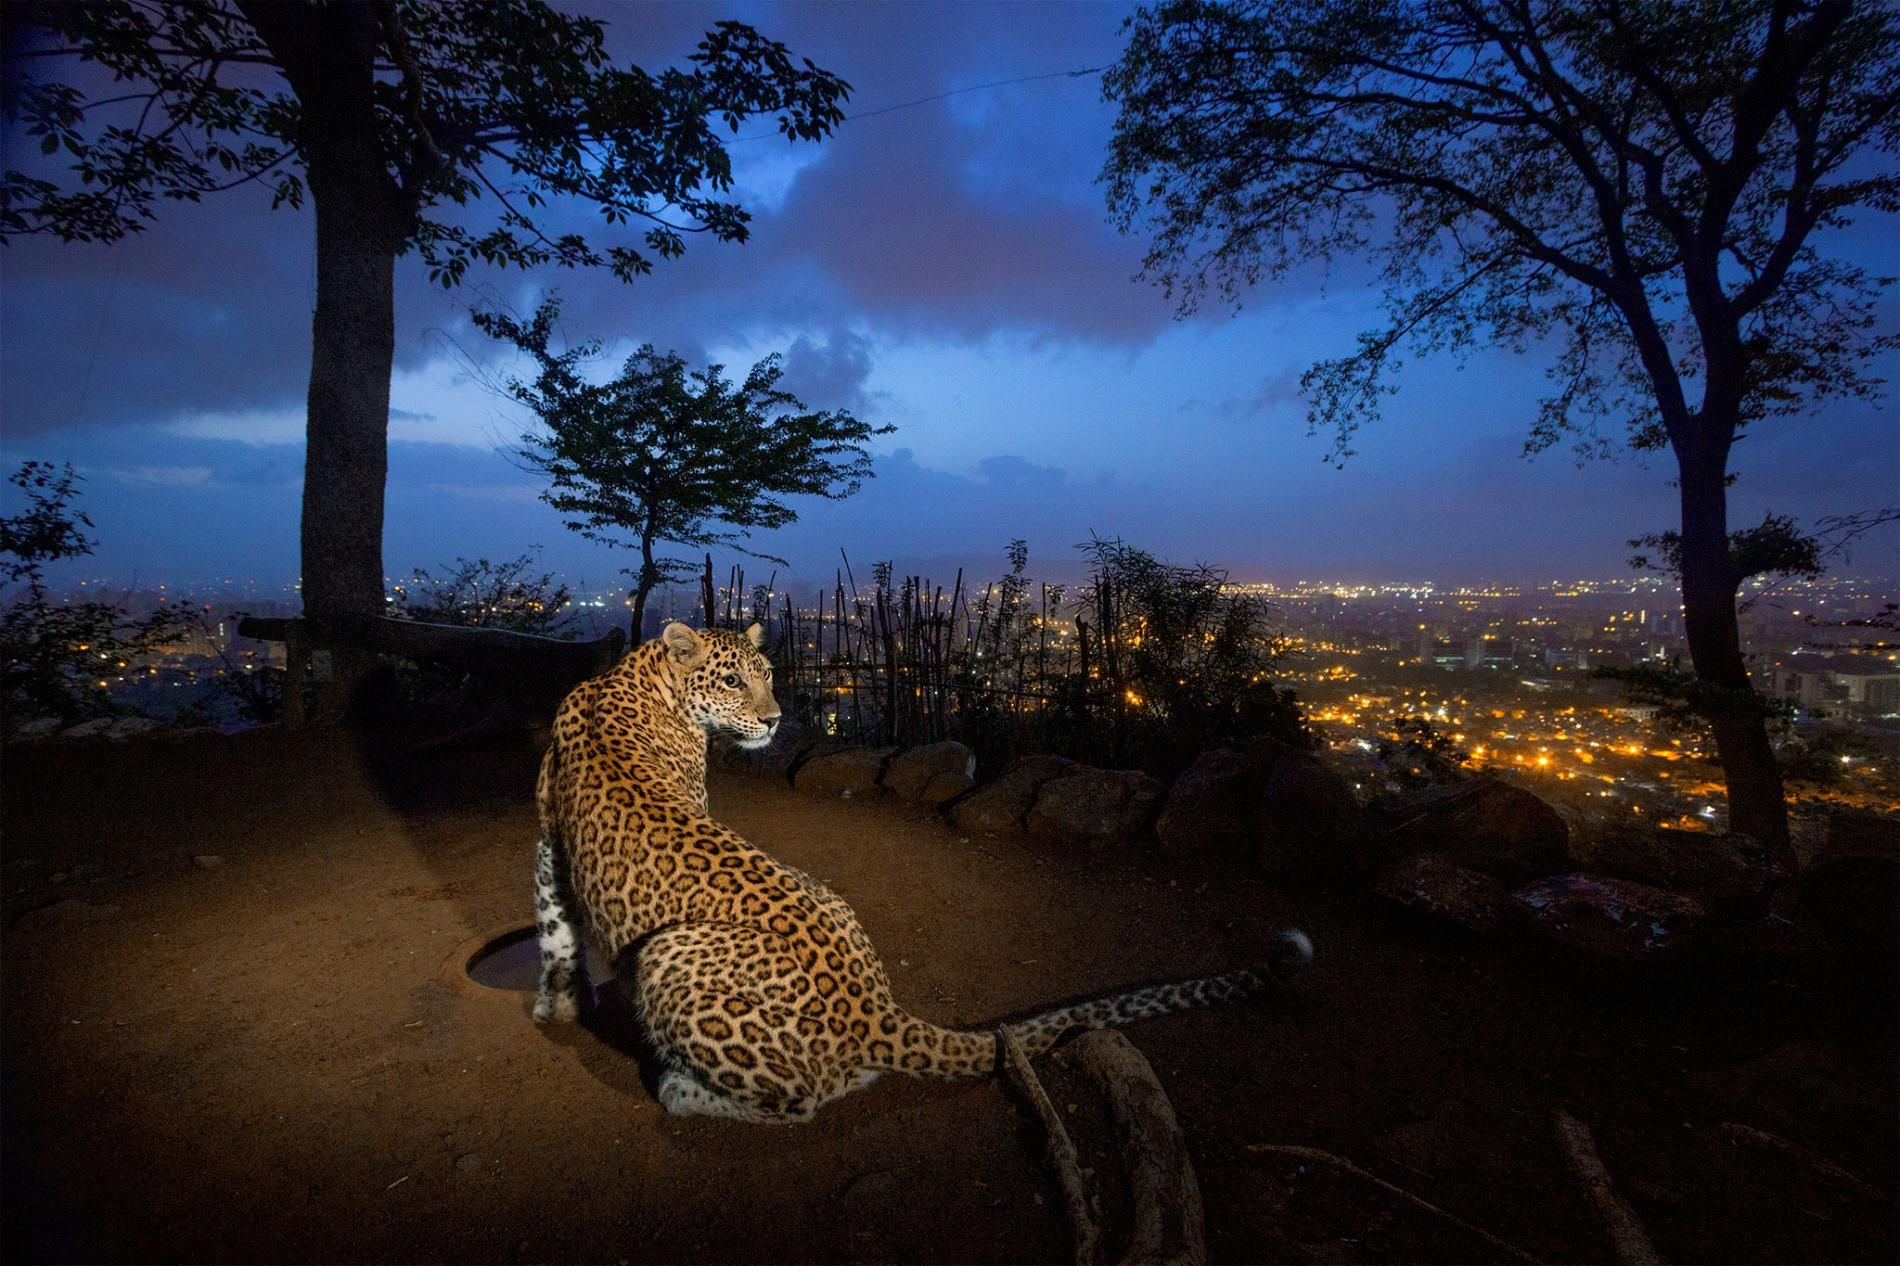 People and Wildlife in India